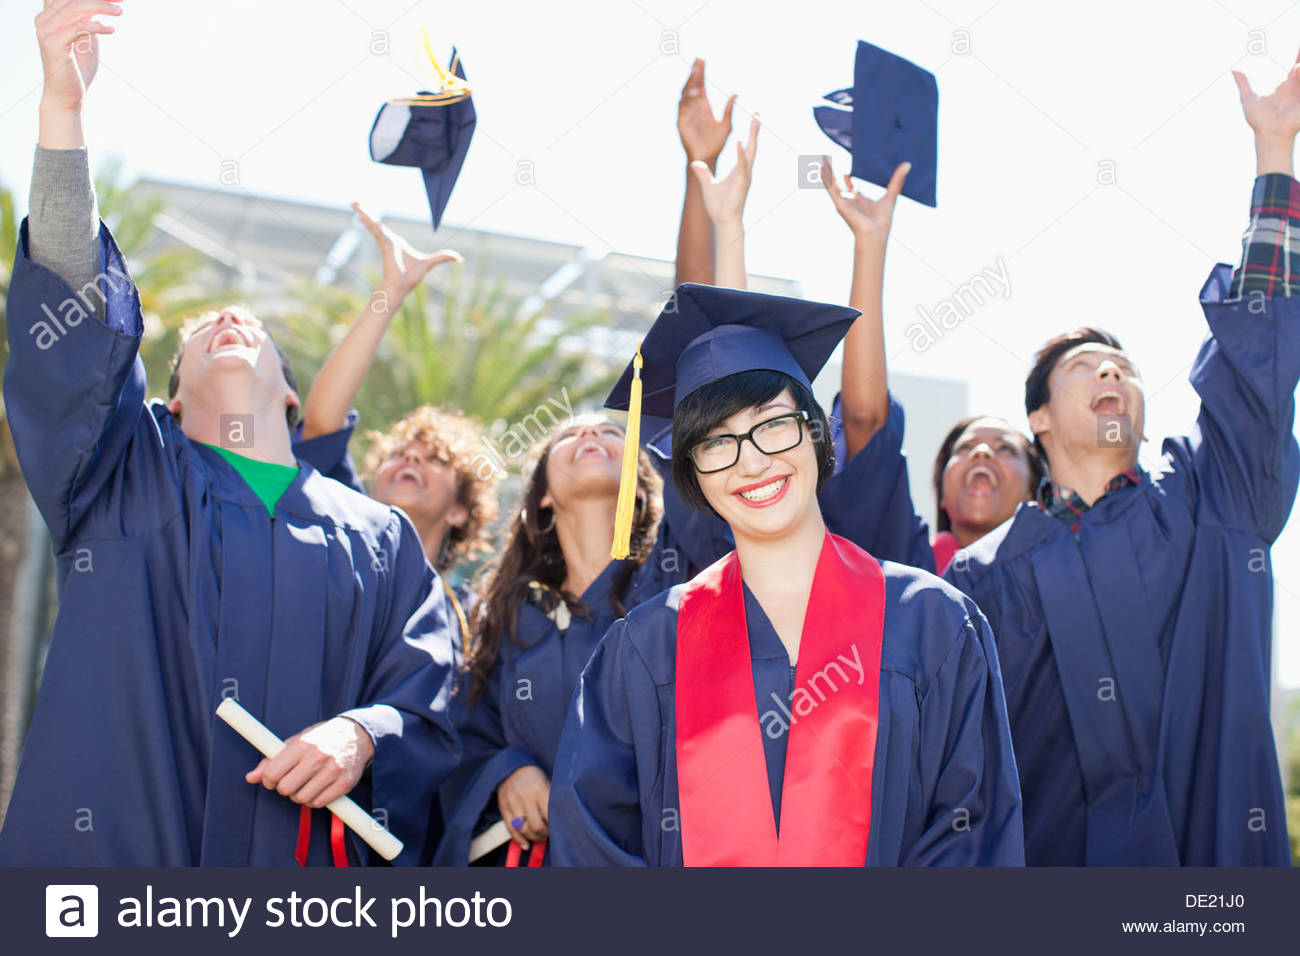 Graduates tossing caps into the air - Stock Image